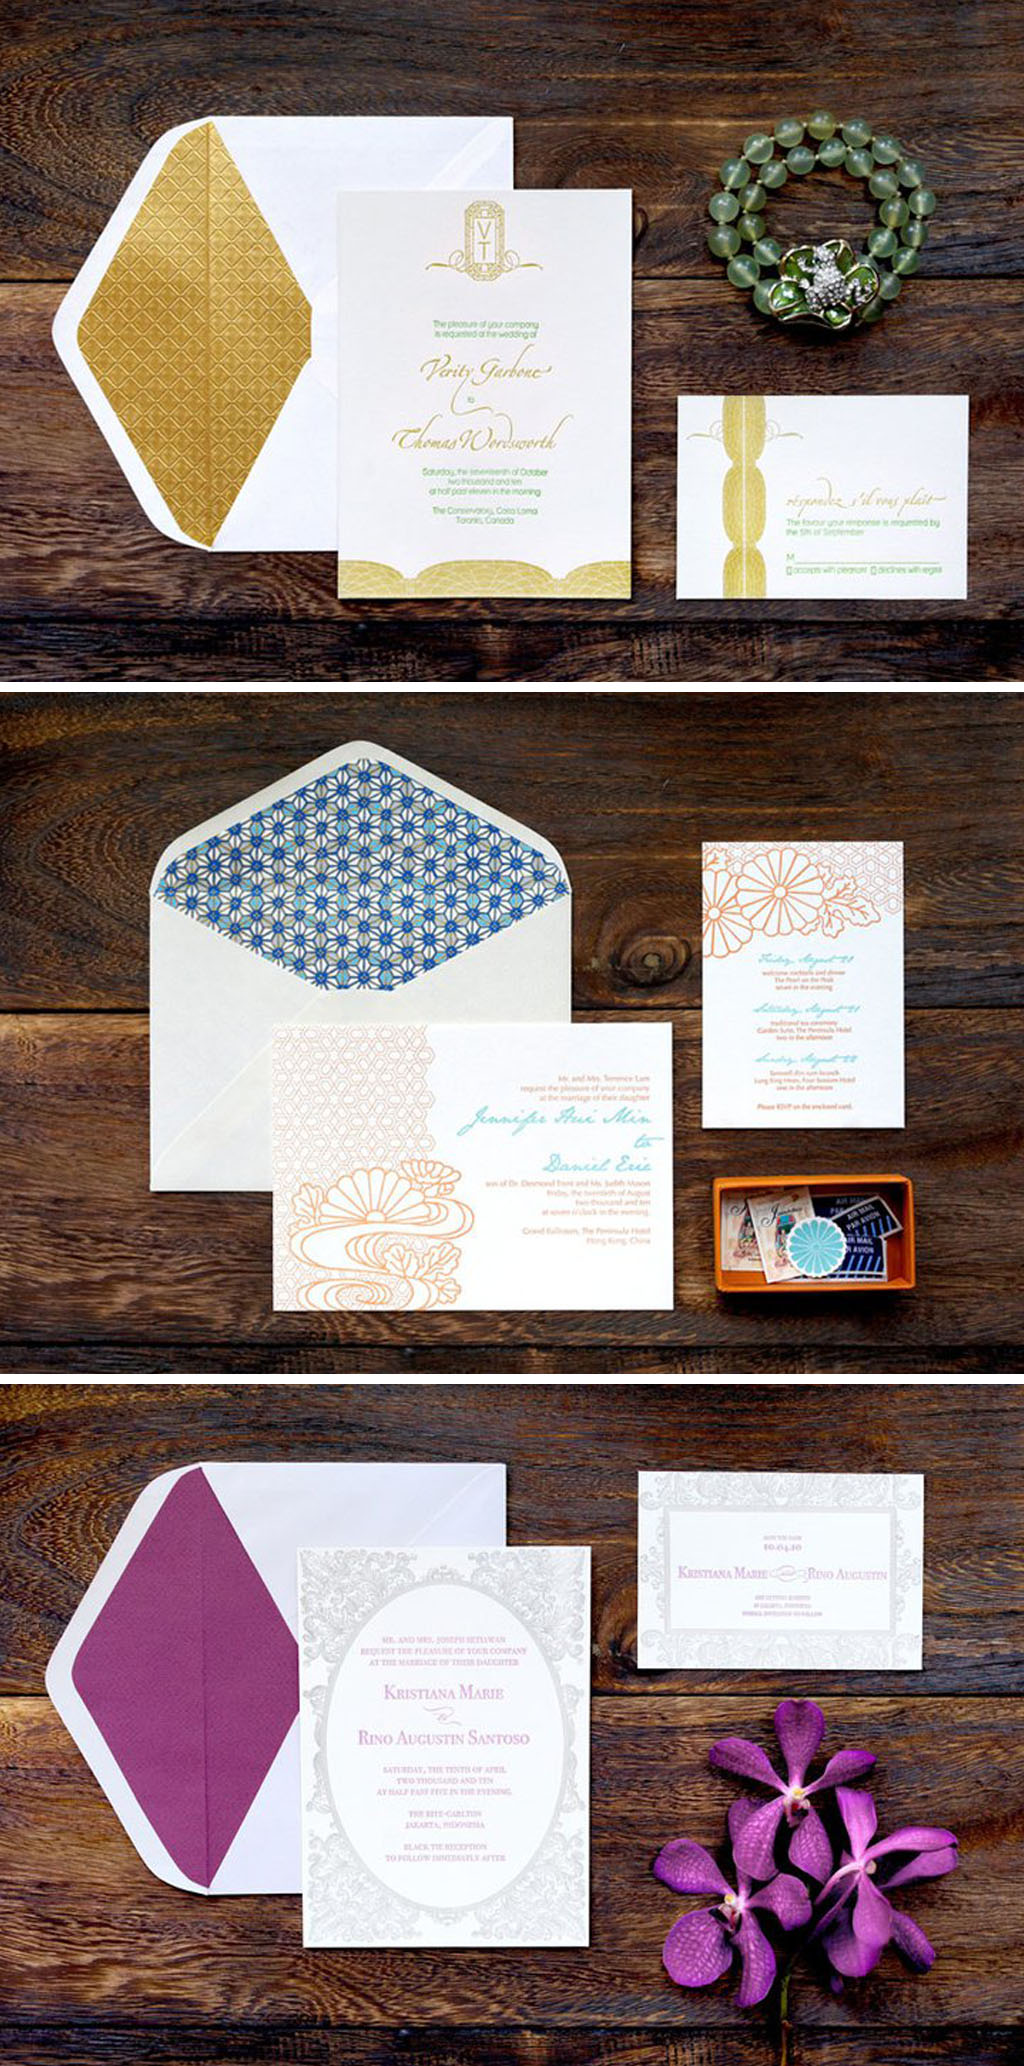 Paper Tiger Press For Luxury Letterpress Wedding Invitation Cards